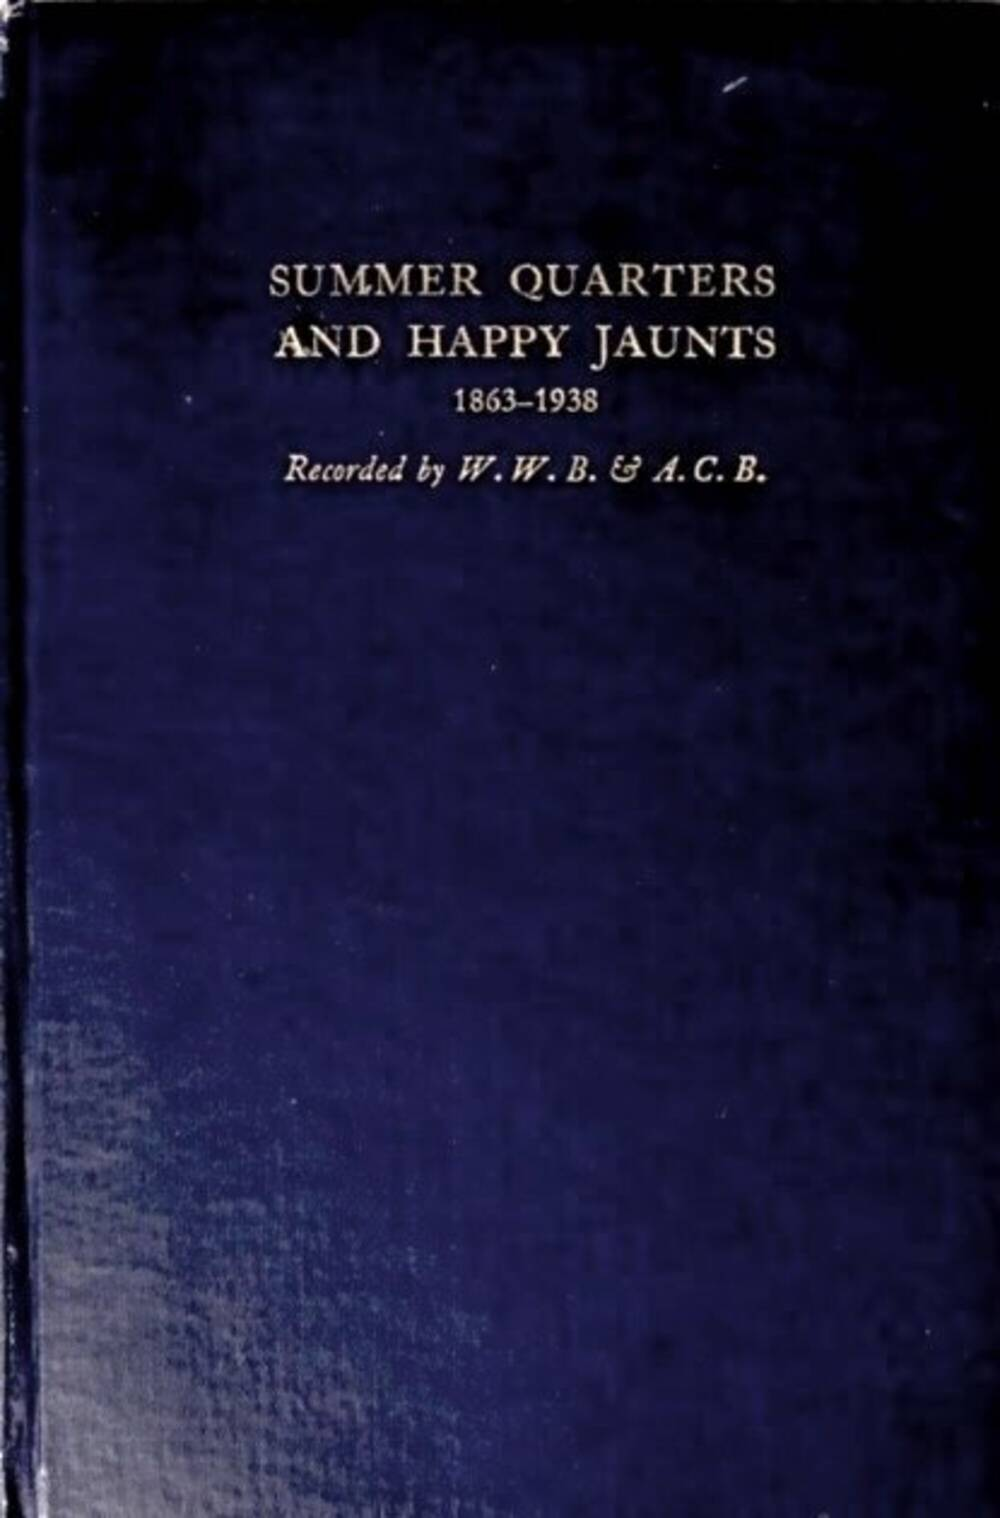 Dark blue book cover: Summer Quarters and Happy Jaunts 1863-1938, recorded by WWB and ACB